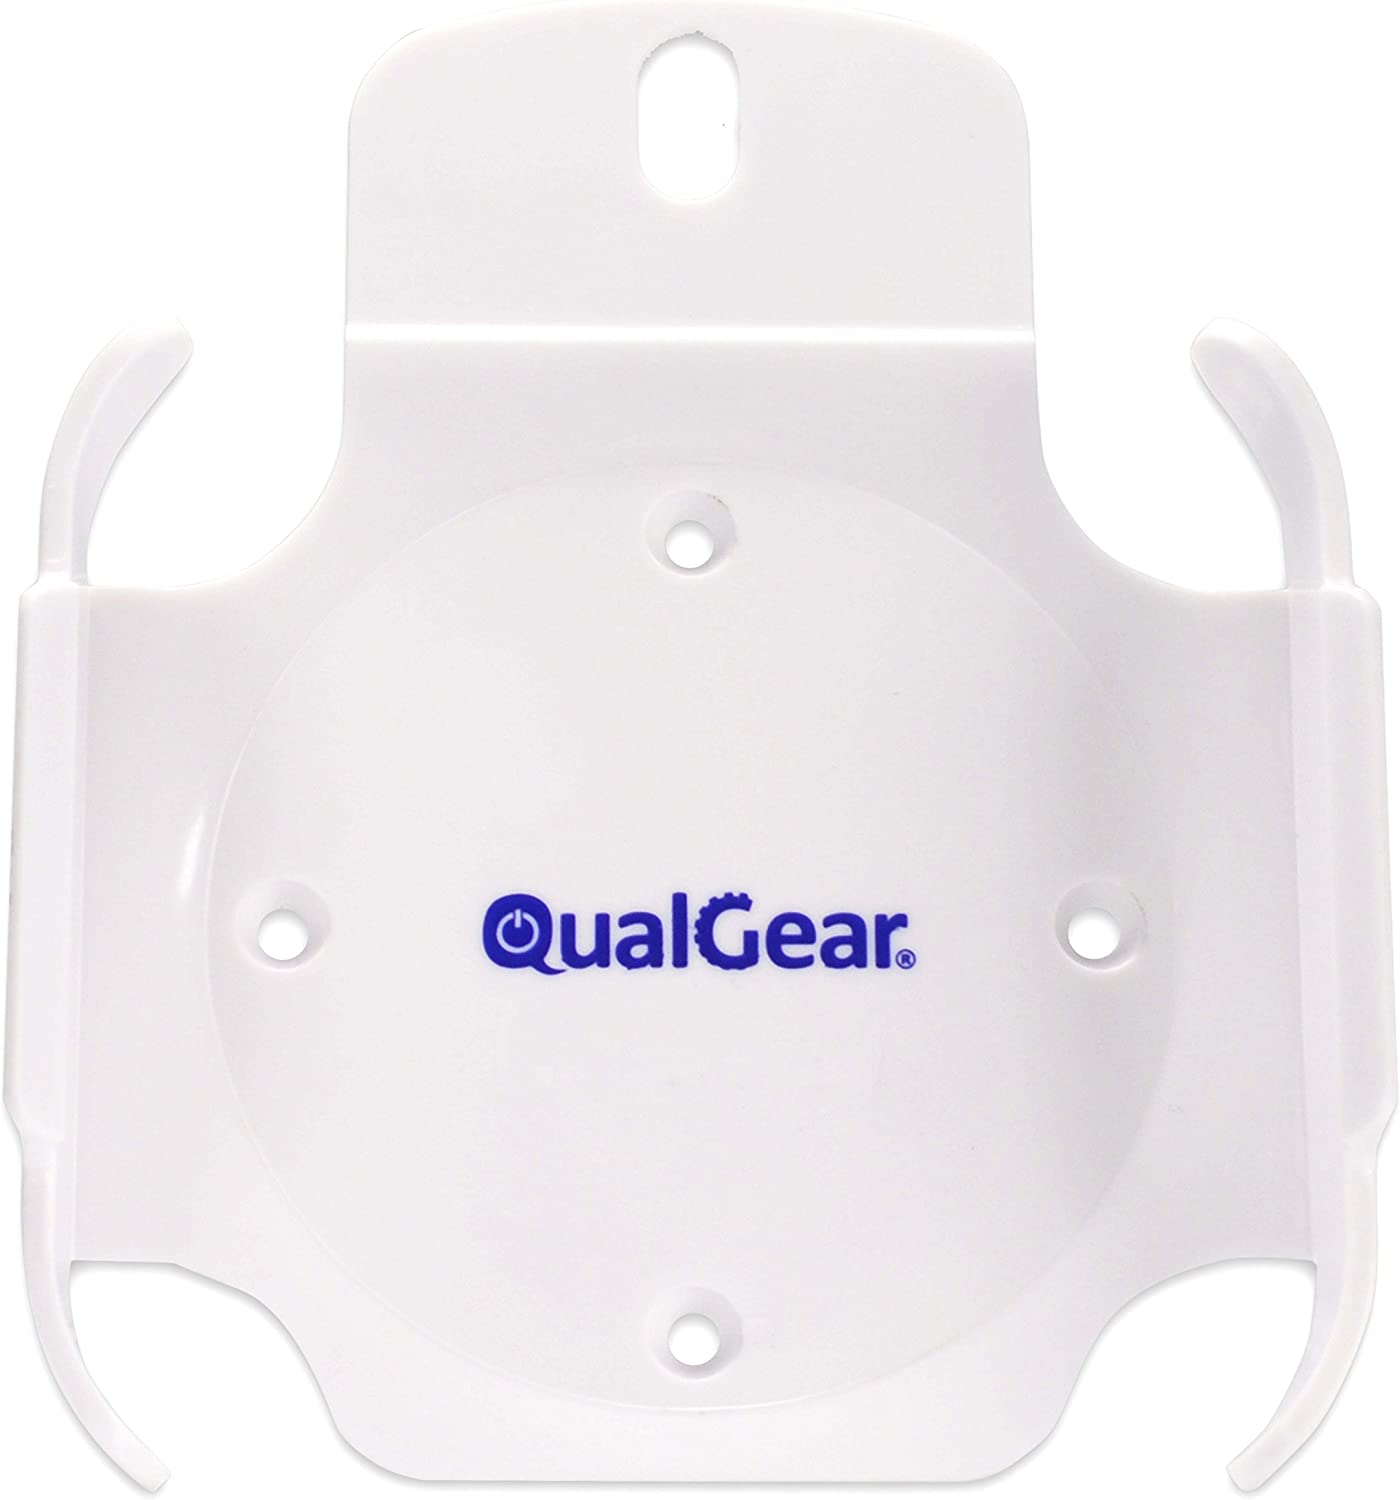 QualGear QG-AM-017-W Mount for Apple TV/AirPort Express Base Station (For 2nd & 3rd Generation Apple TVs)